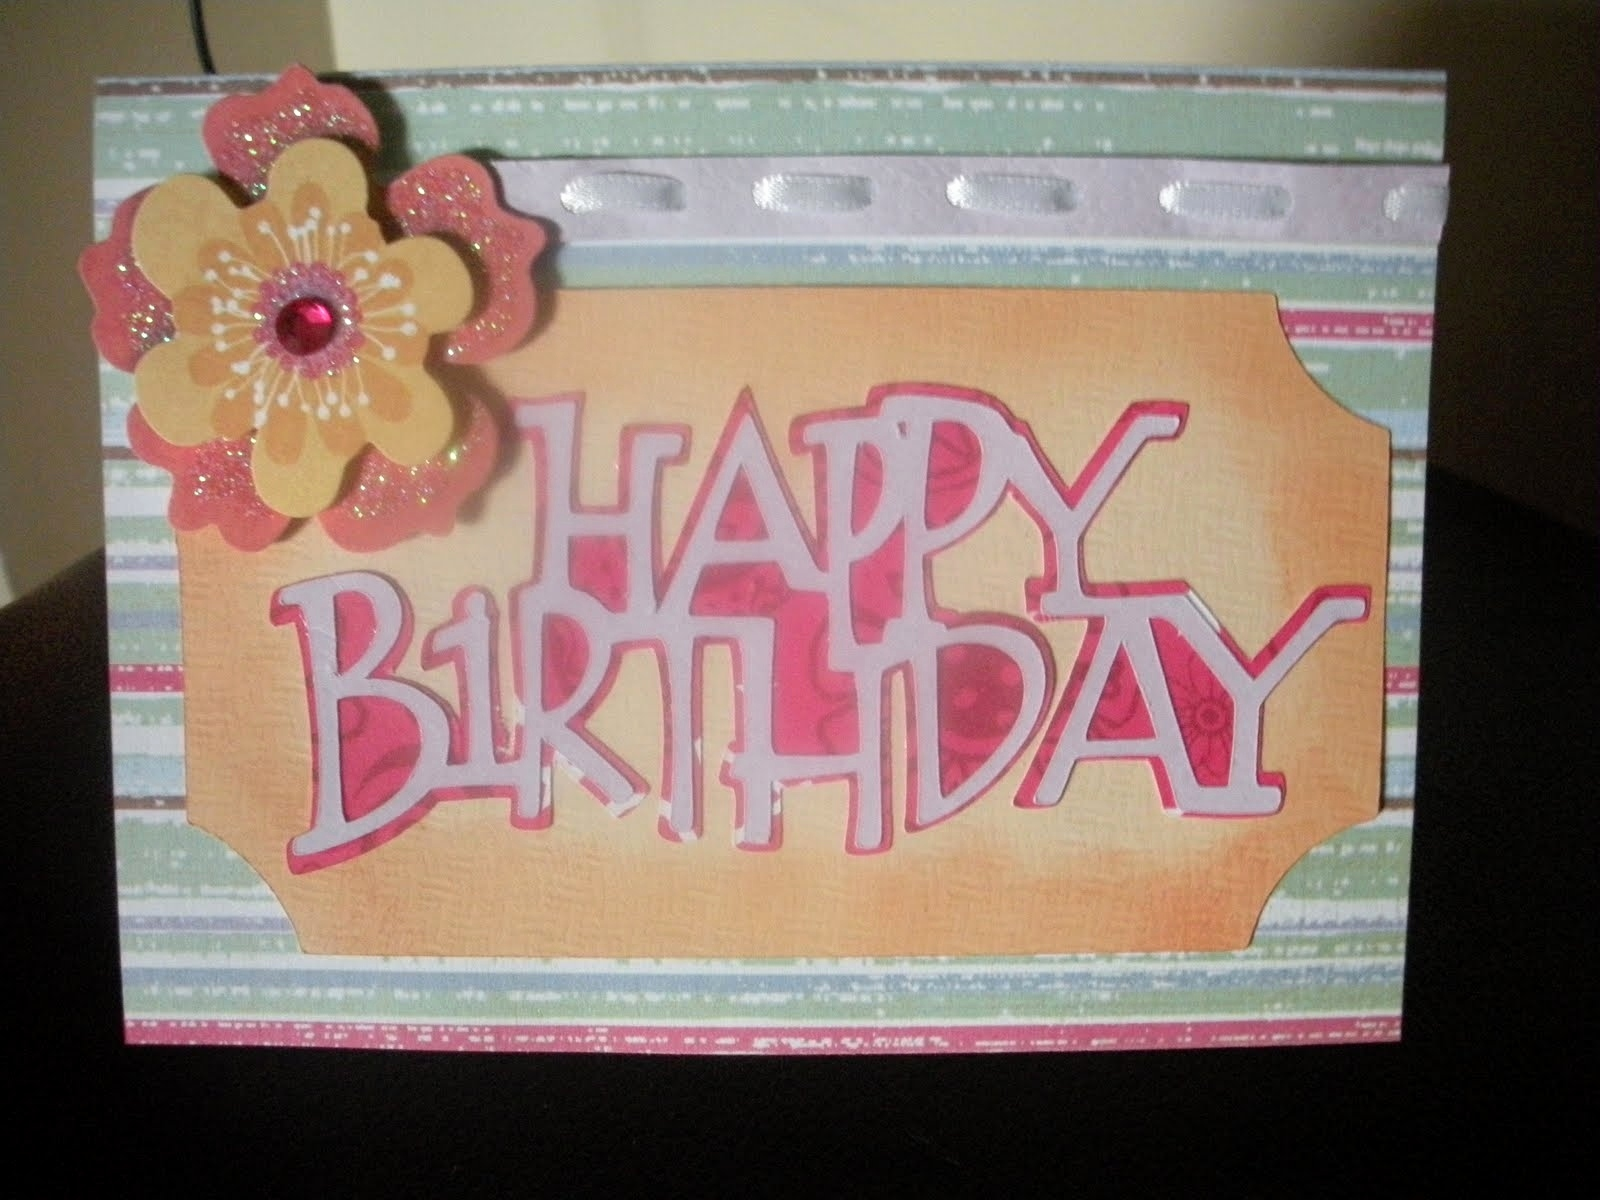 send birthday card to cell phone ; send-a-free-birthday-card-to-cell-phone-inspirational-send-e-birthday-card-unique-birthday-card-send-birthday-card-to-of-send-a-free-birthday-card-to-cell-phone